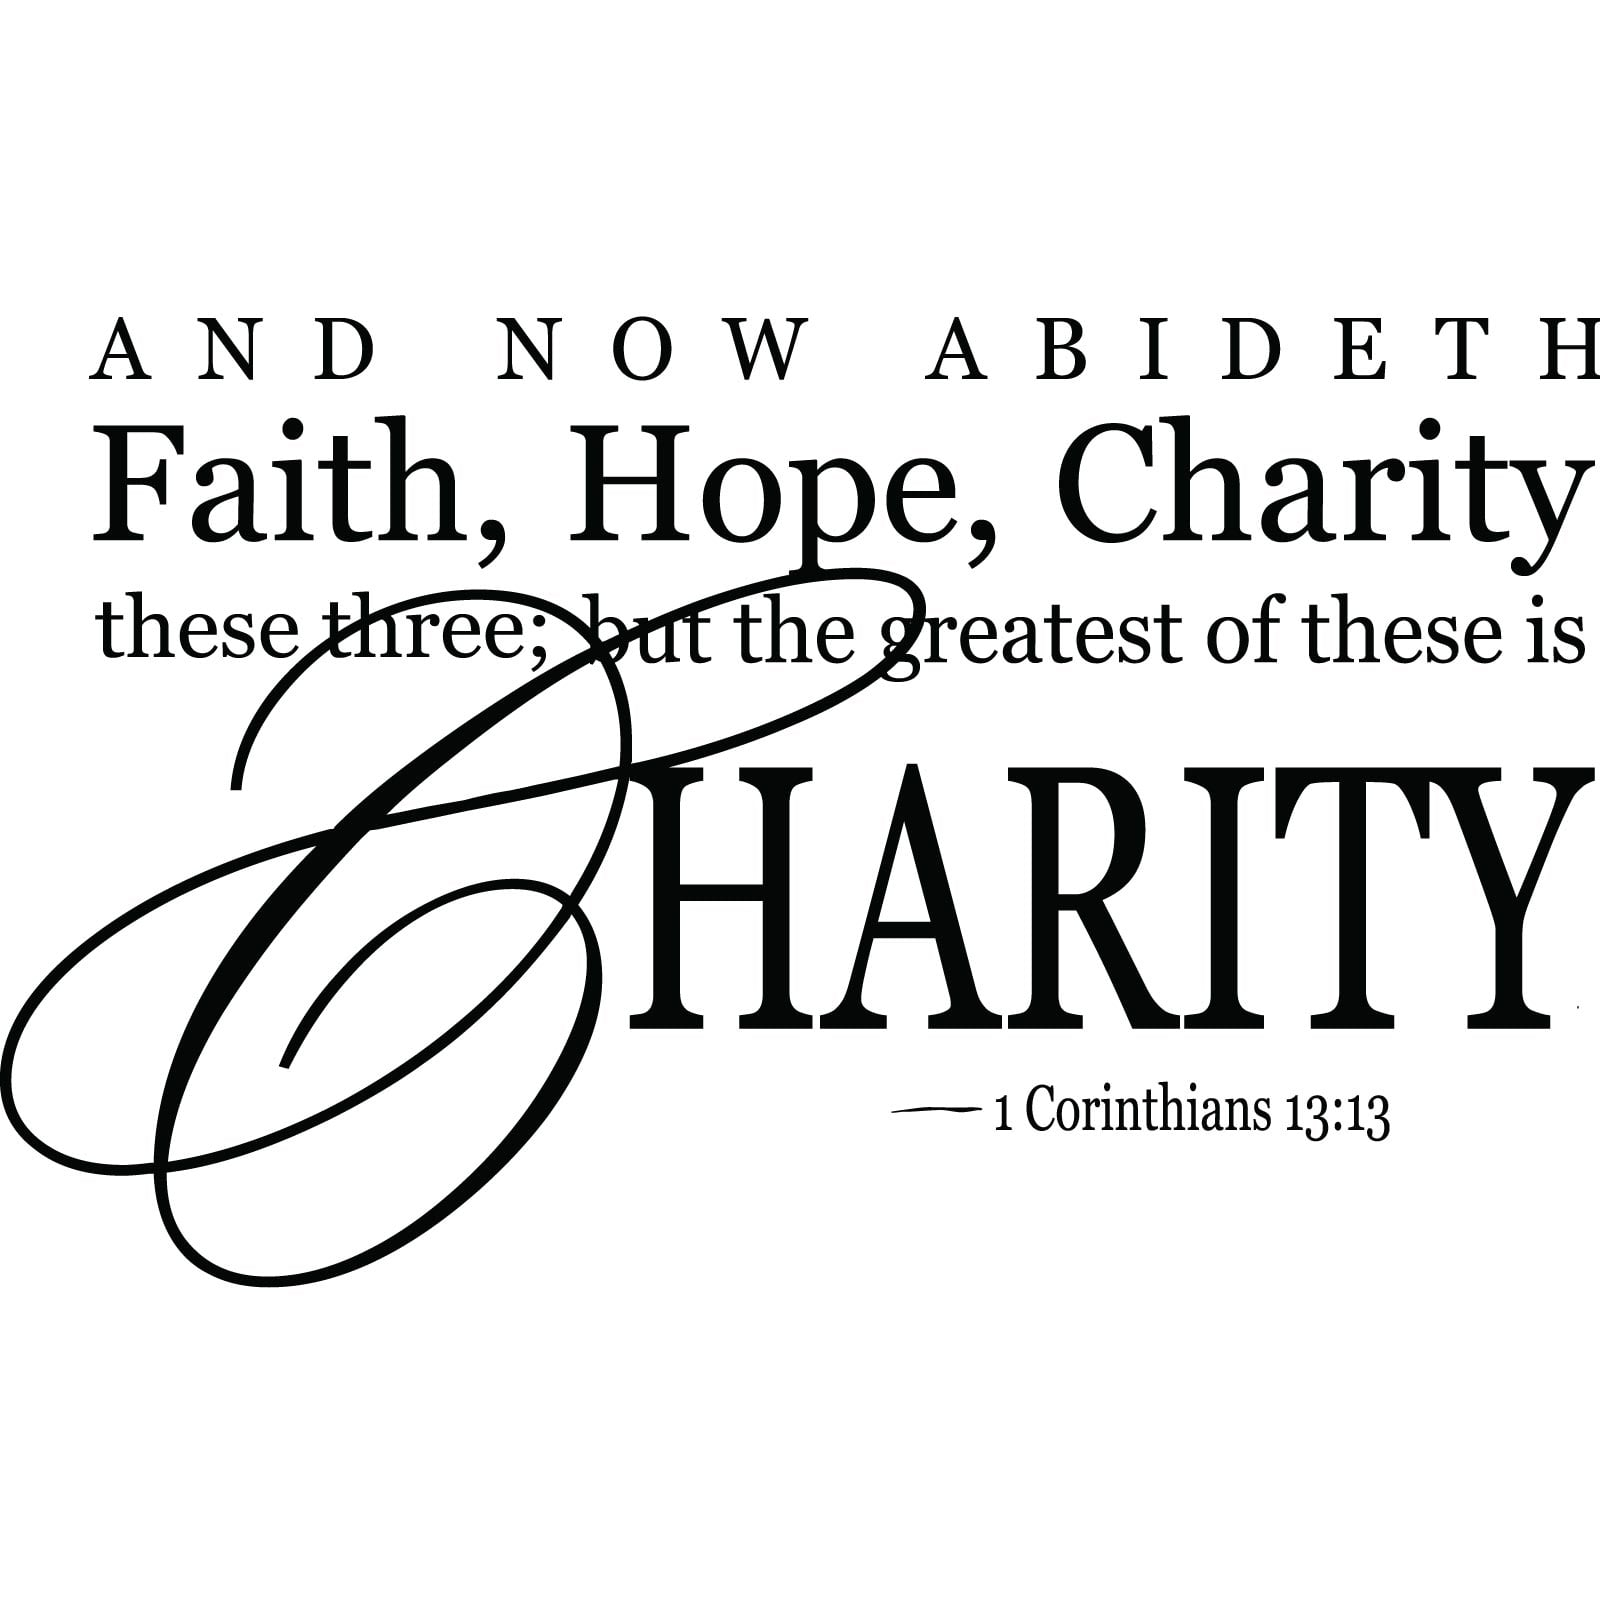 Faith hope charity religious quote wall sticker world of wall faith hope charity religious quote wall sticker world of wall stickers buycottarizona